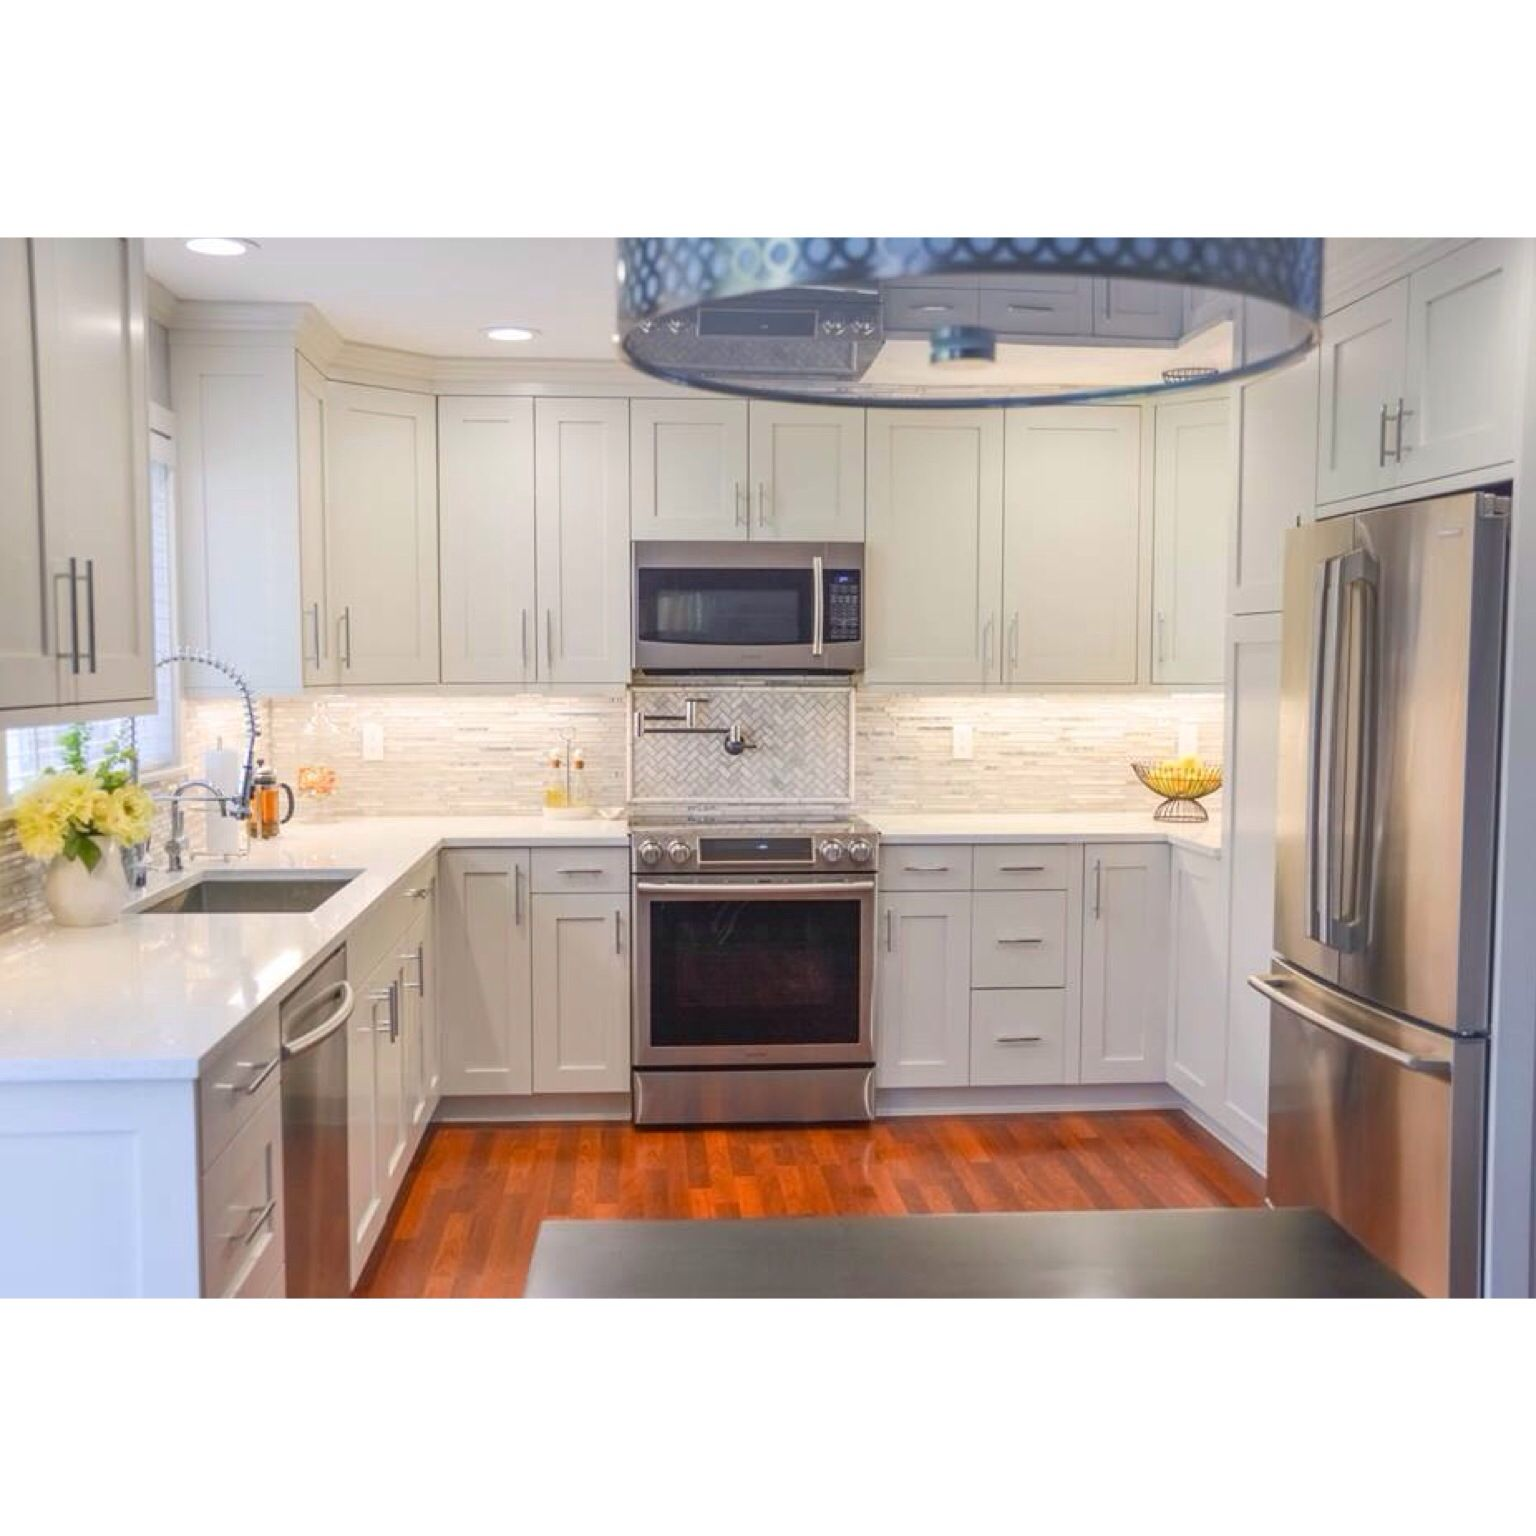 image result for benjamin moore classic gray with images benjamin moore kitchen kitchen on kitchen cabinets grey and white id=37894